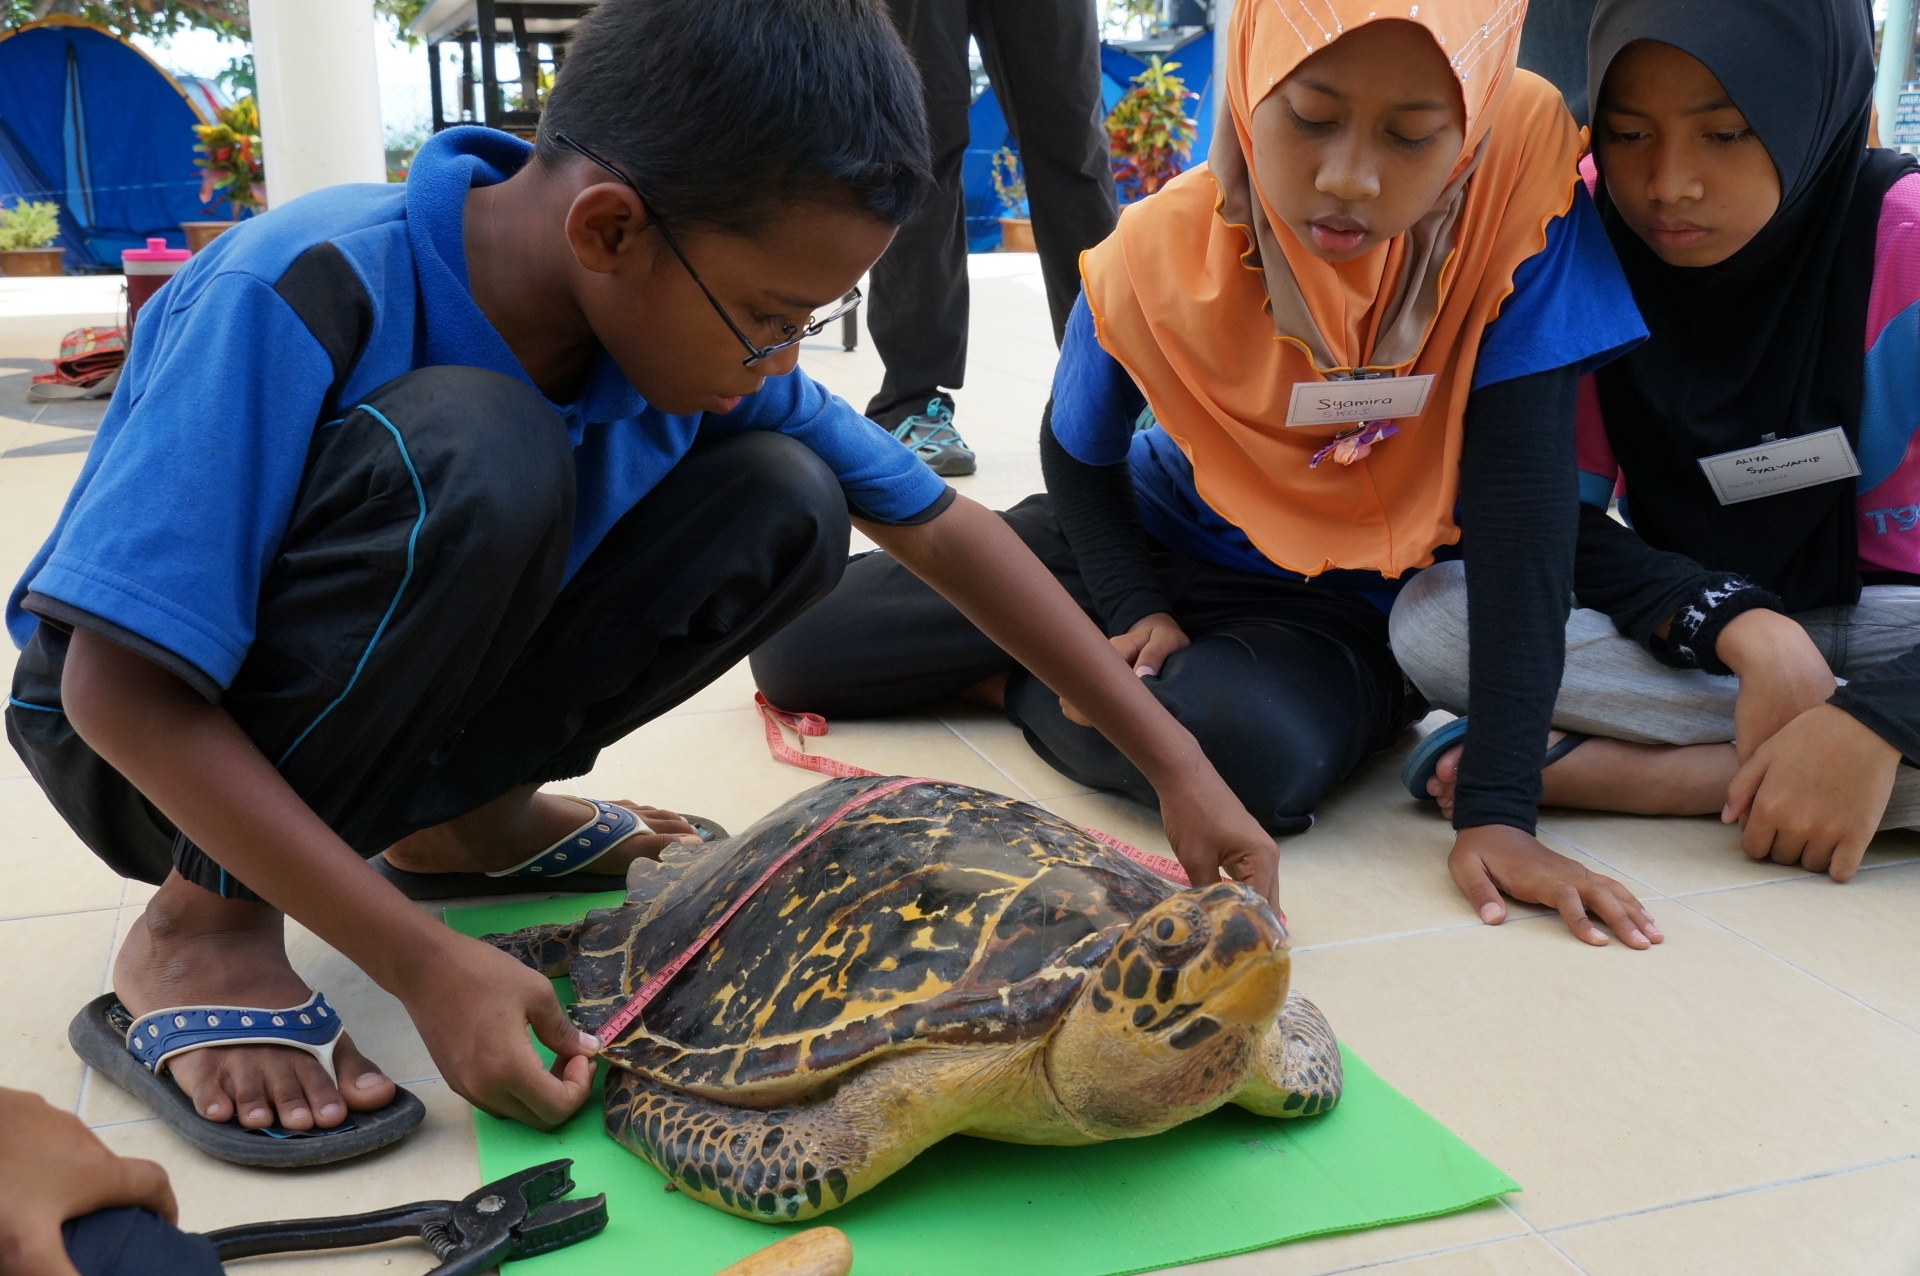 wwf malaysia welcomes tougher sentencing applied for wildlife crimes